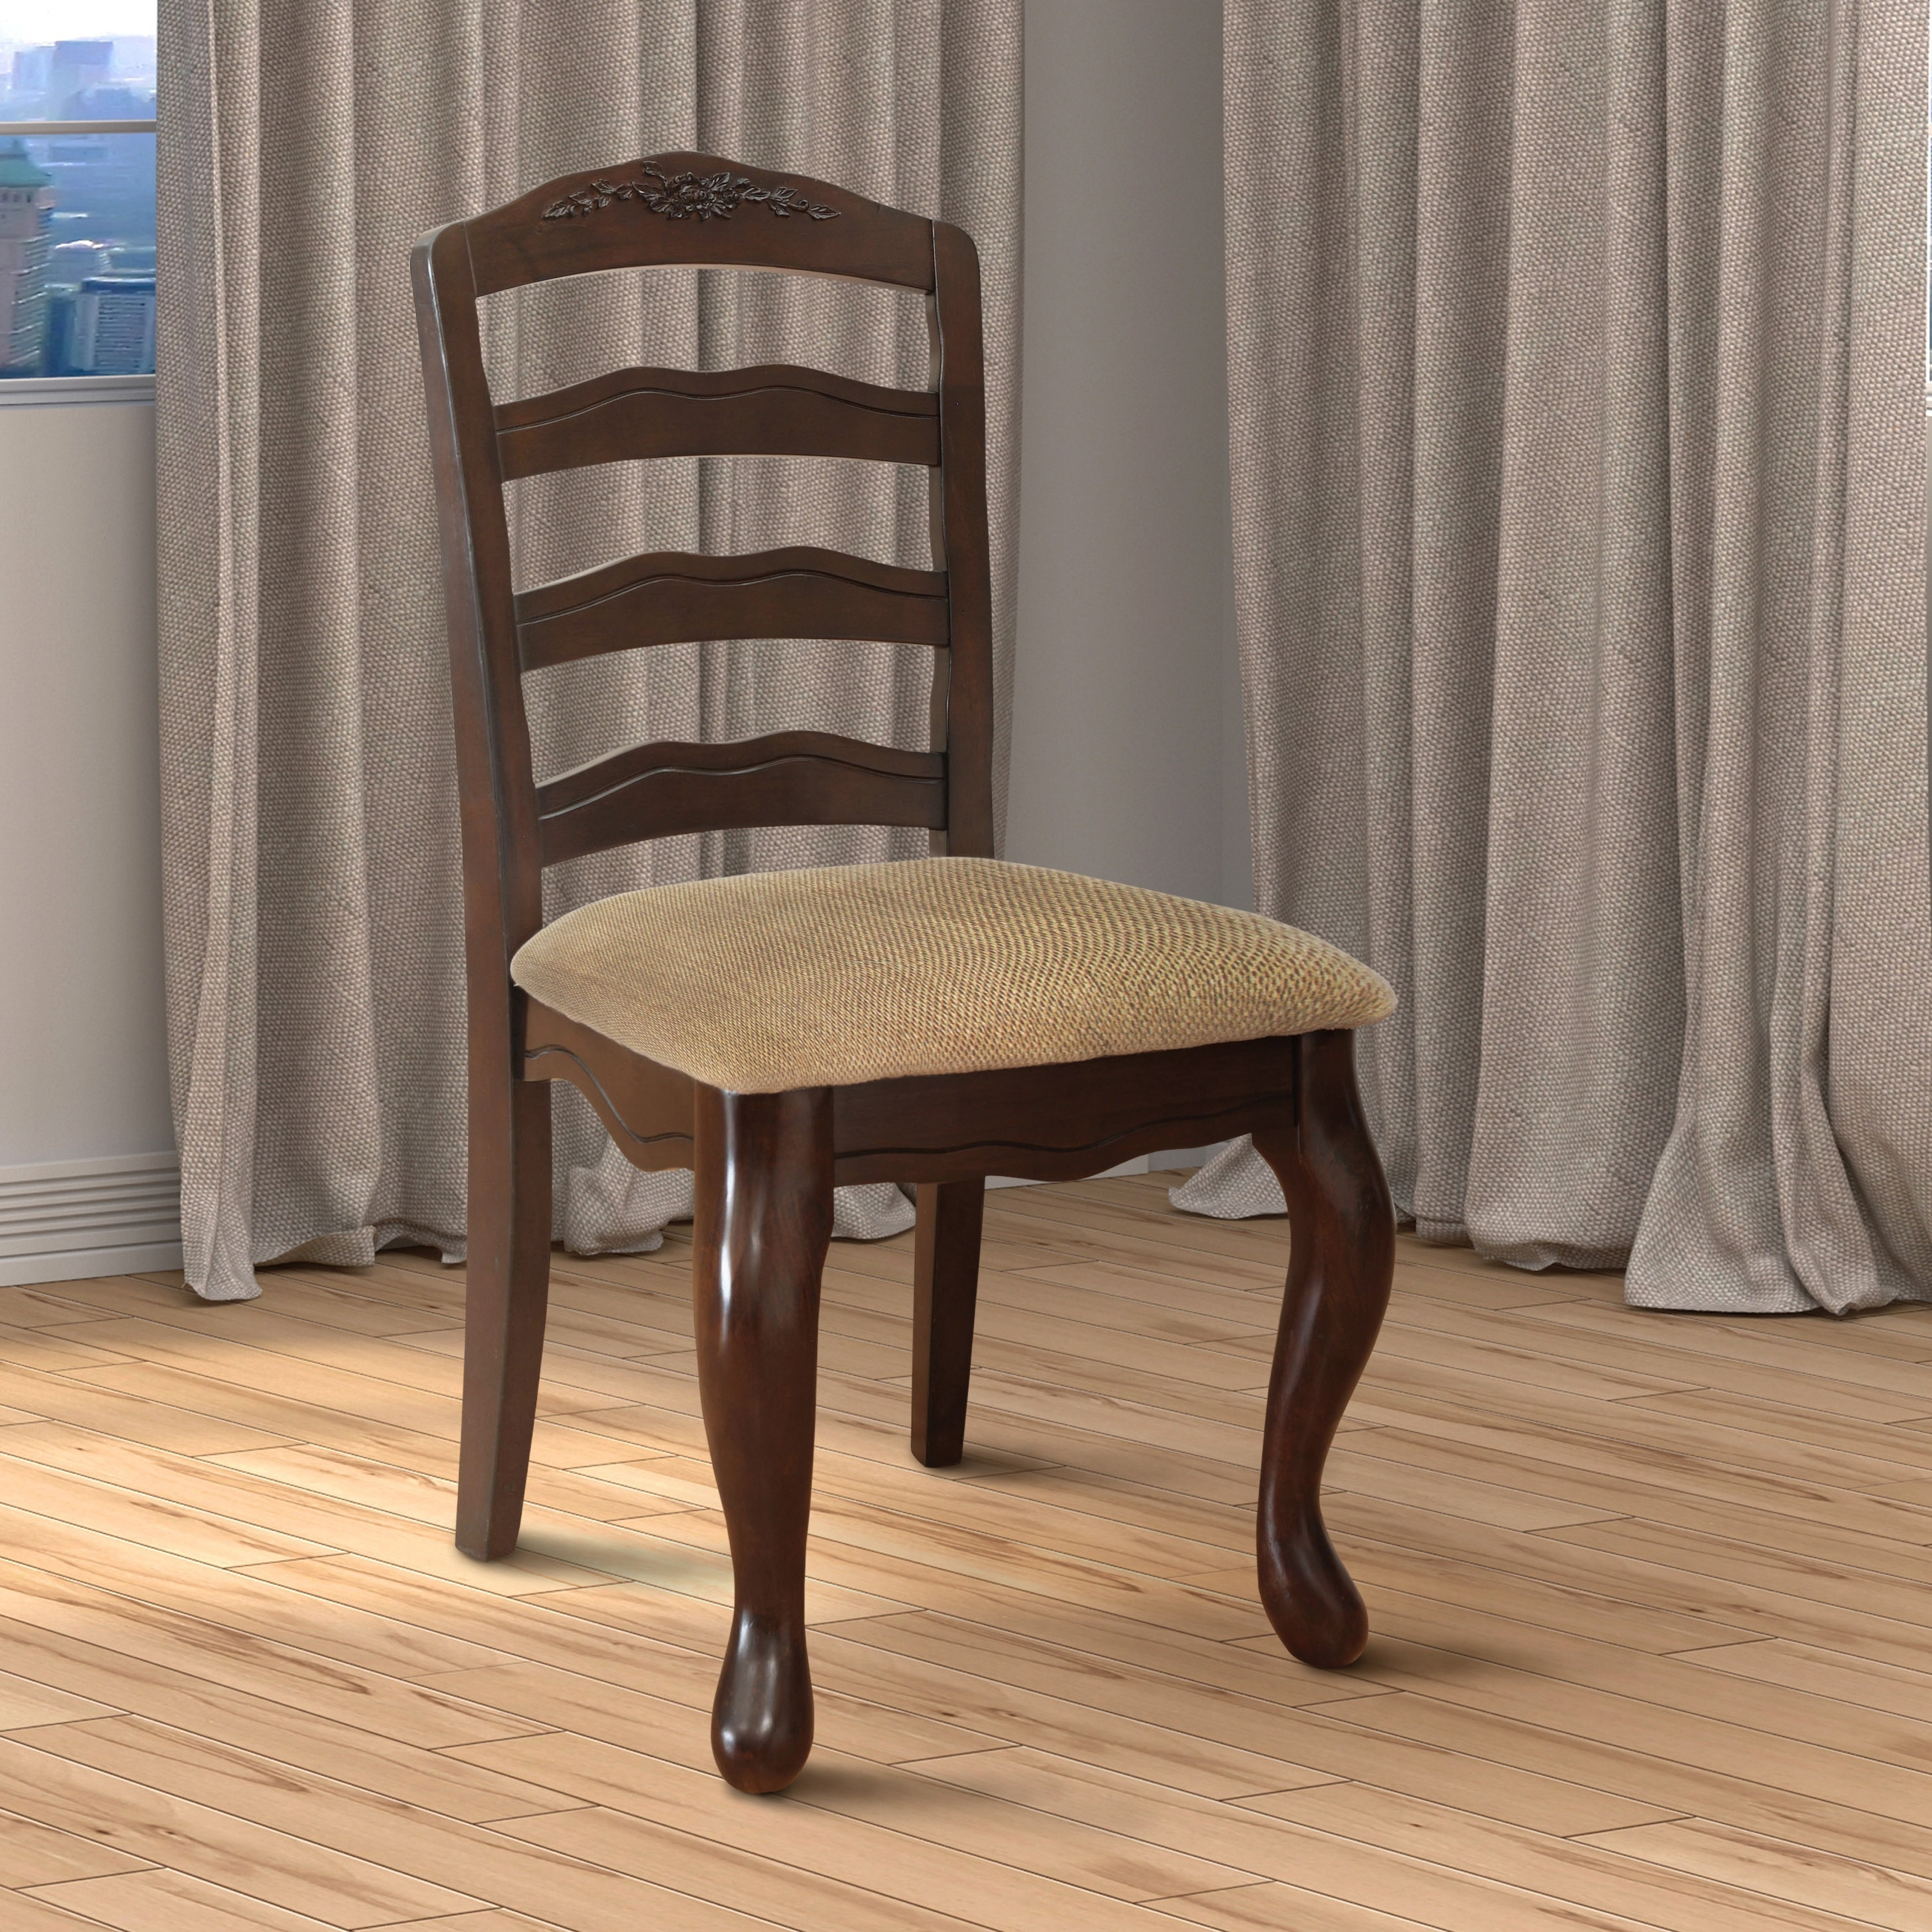 Furniture of America Le Deveaux Dark Walnut Dining Chairs (Set of 2) at Sears.com